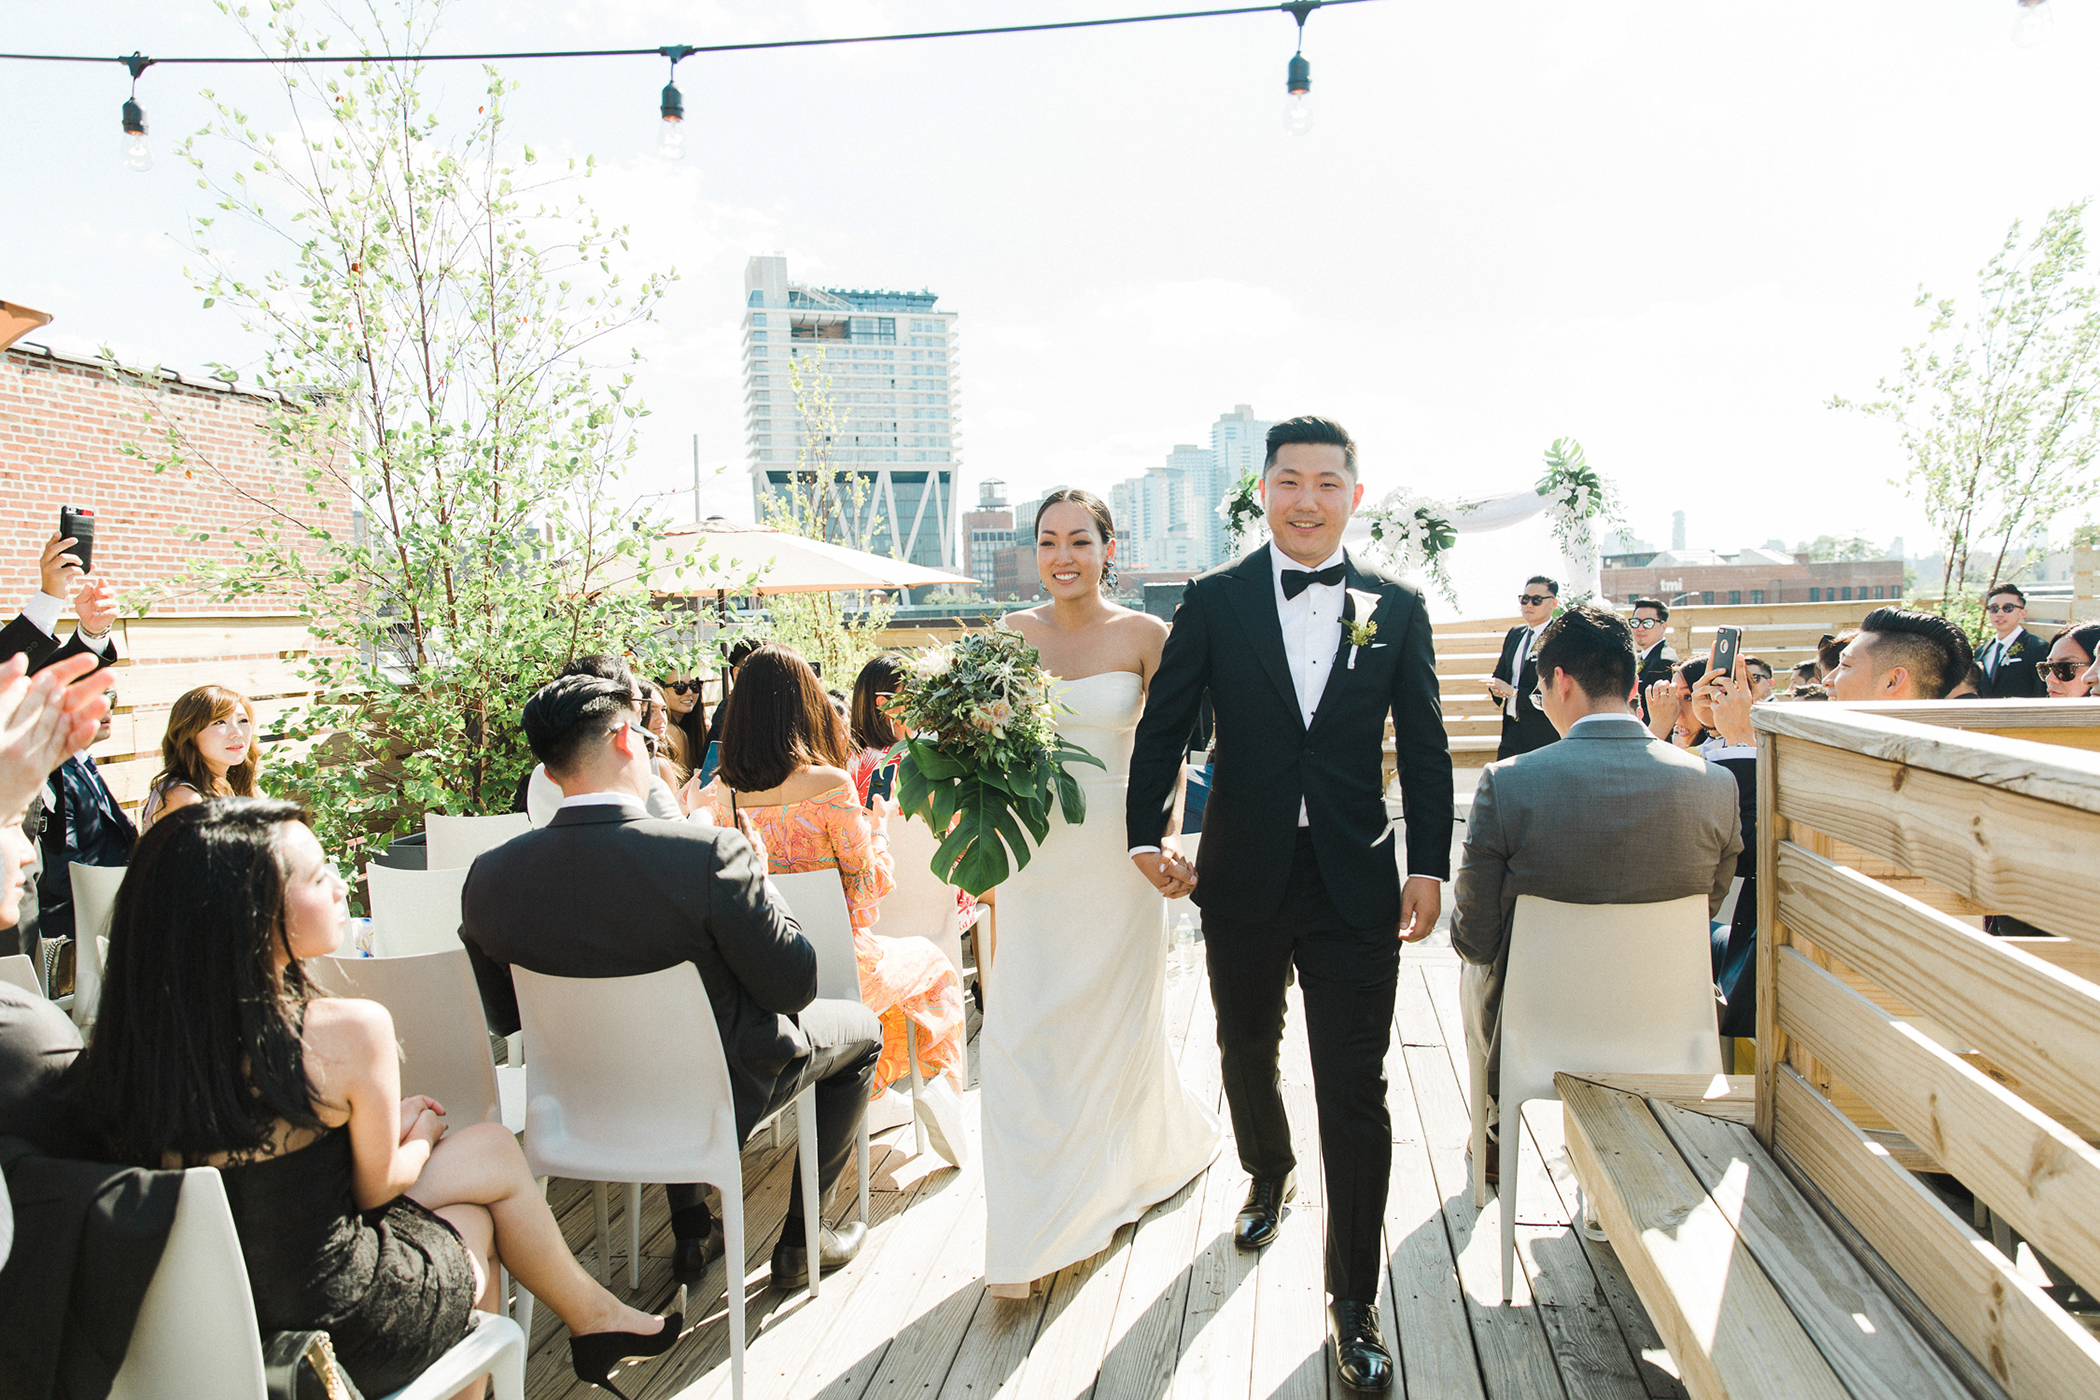 Wedding sites with romantic rooftop glamour in ny and nj dobbin st brooklyn ny junglespirit Gallery